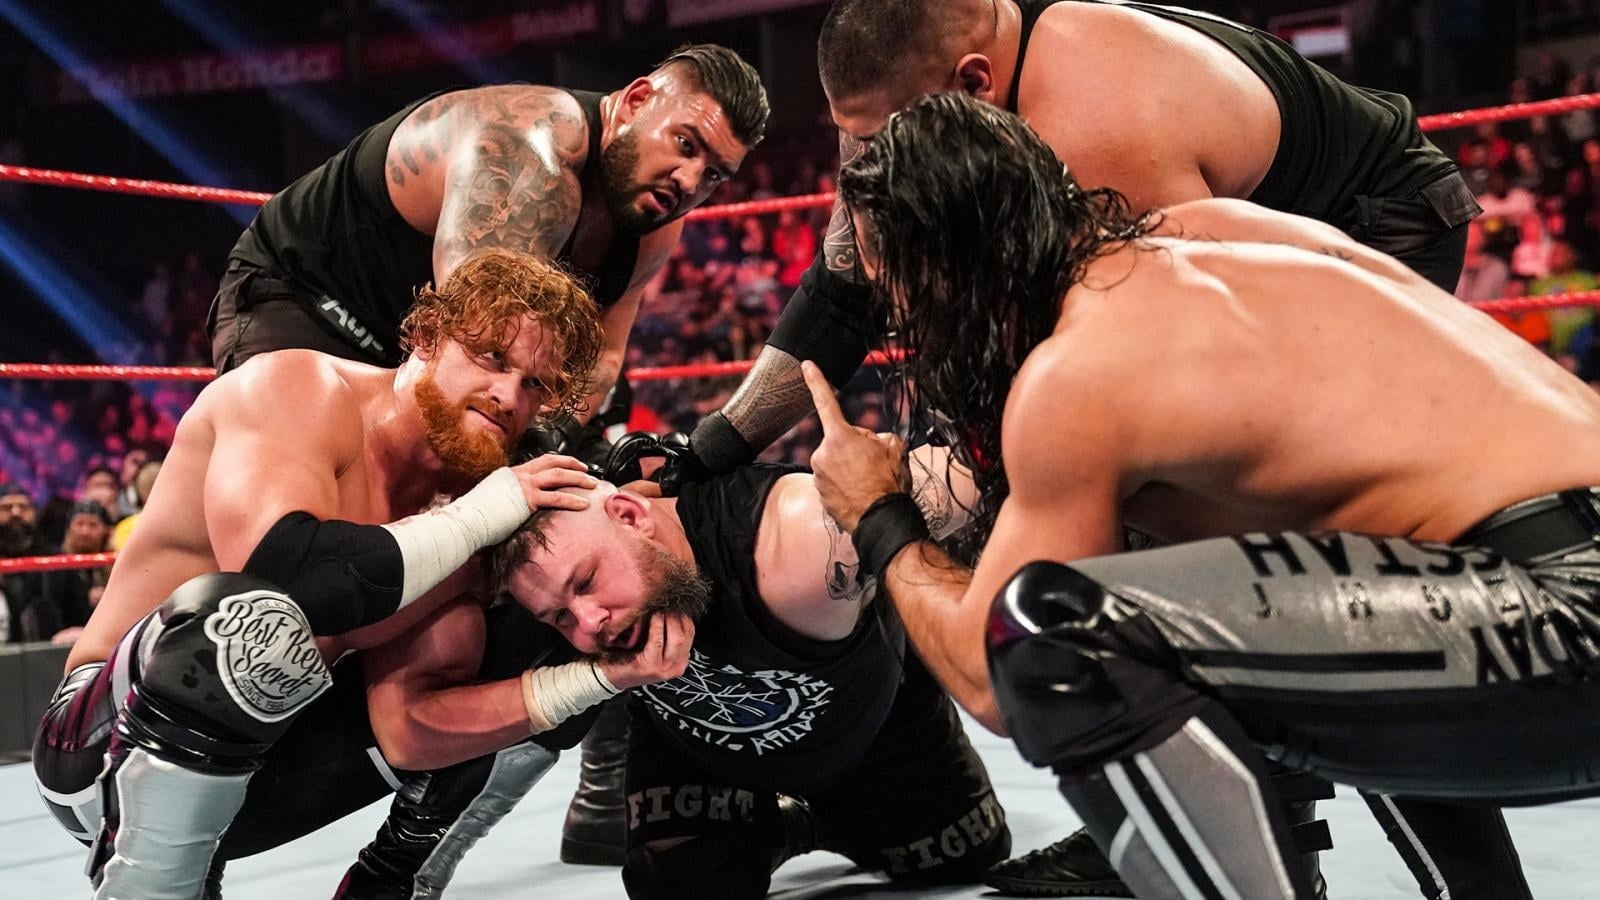 WWE Raw - Season 28 Episode 7 : February 17, 2020 (Everett, WA)